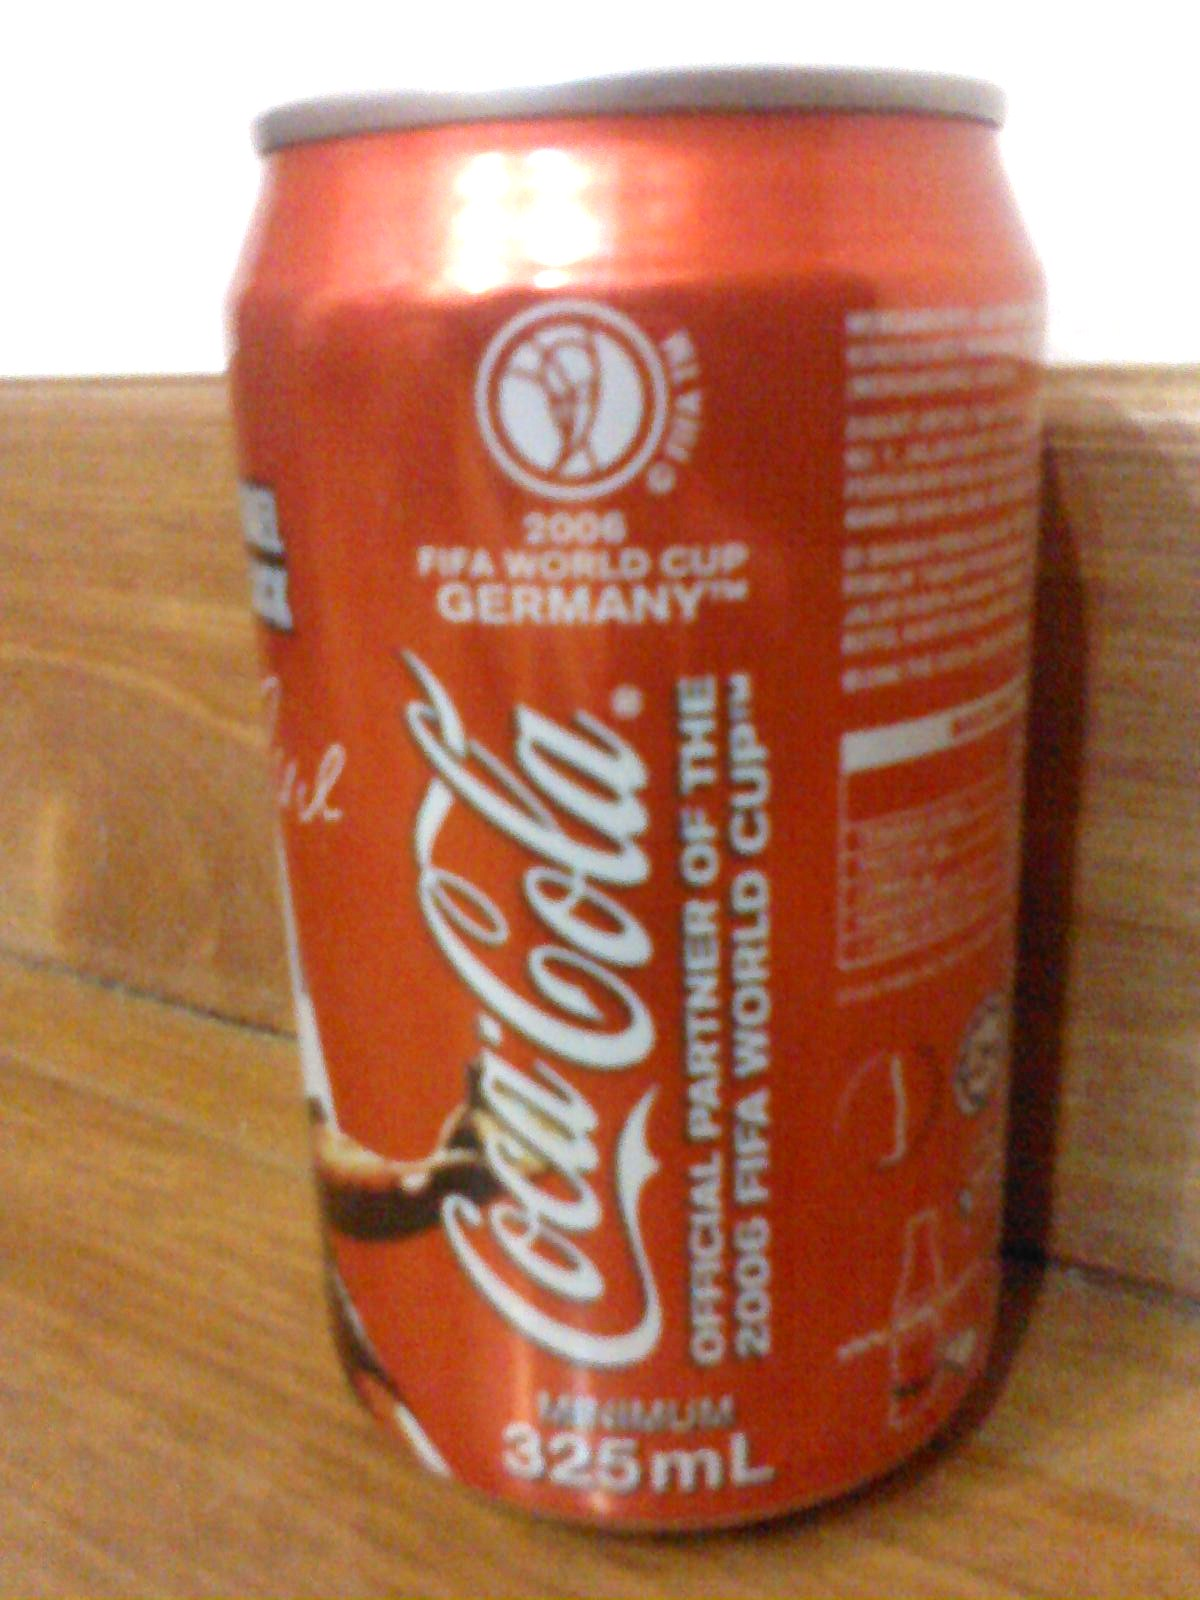 Of ballet shoes and pompons 2006 fifa world cup germany edition coca cola ca - Coca cola edition limitee ...